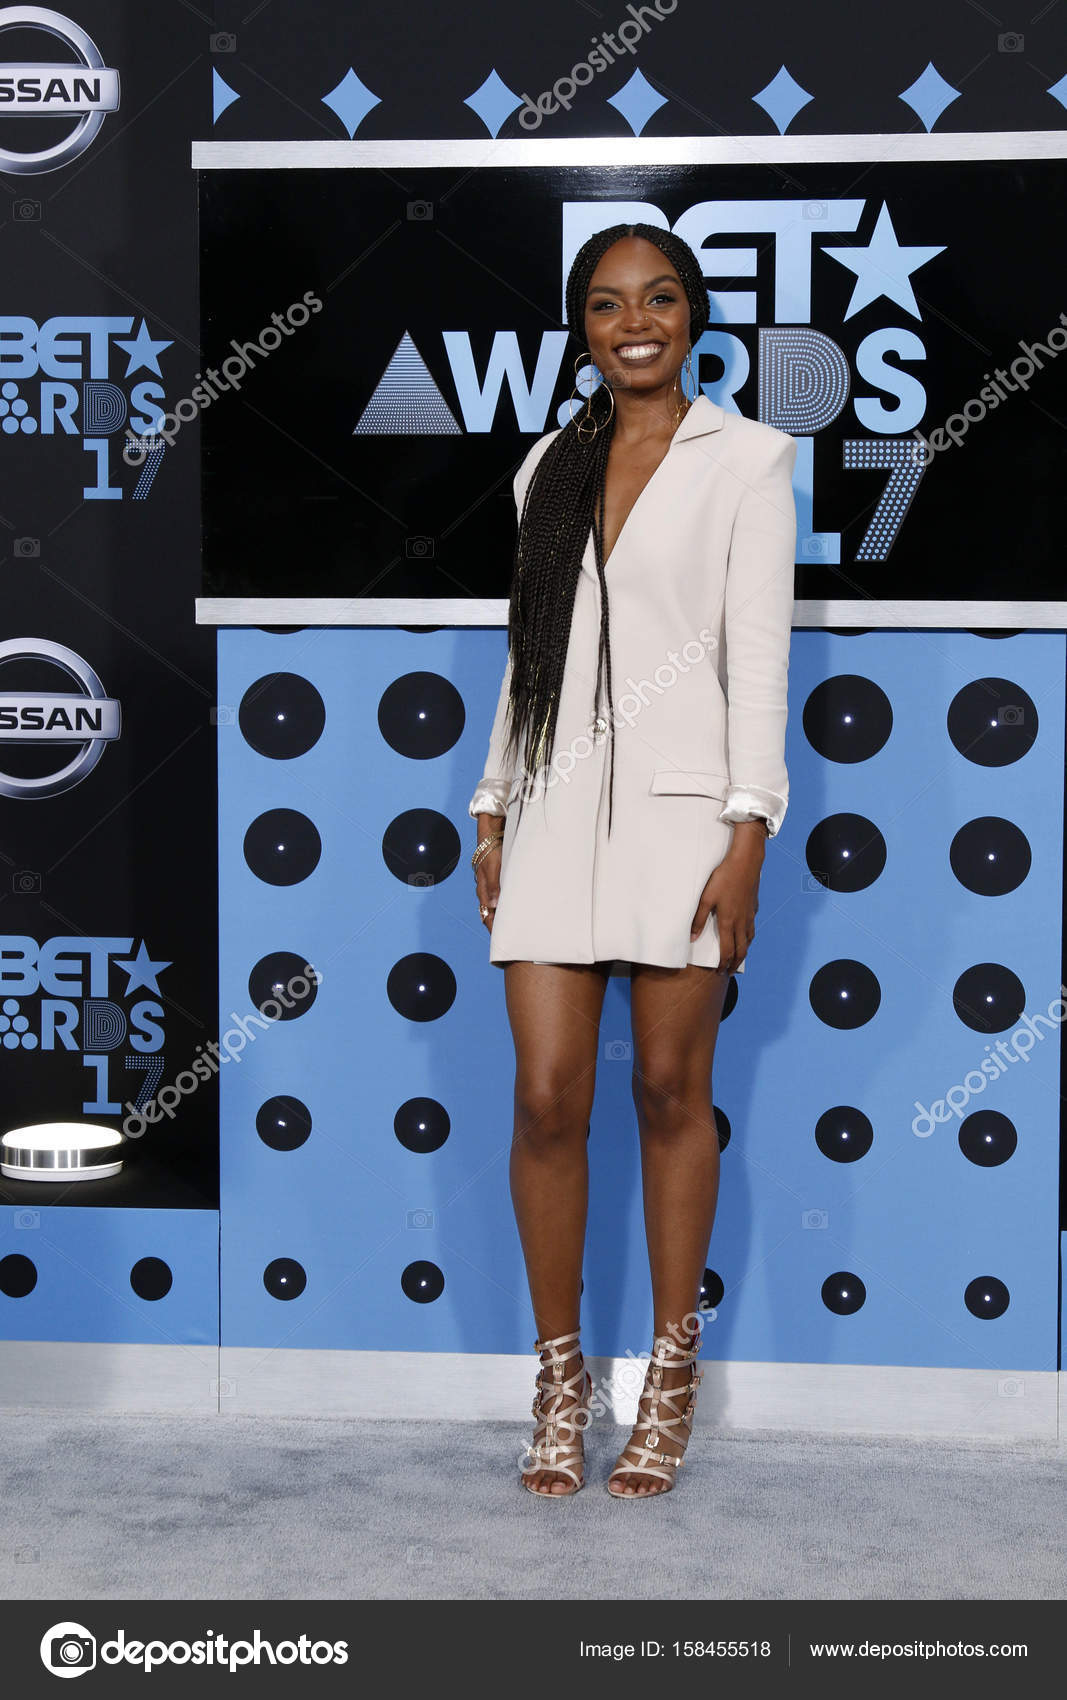 bet awards 2017 full show download